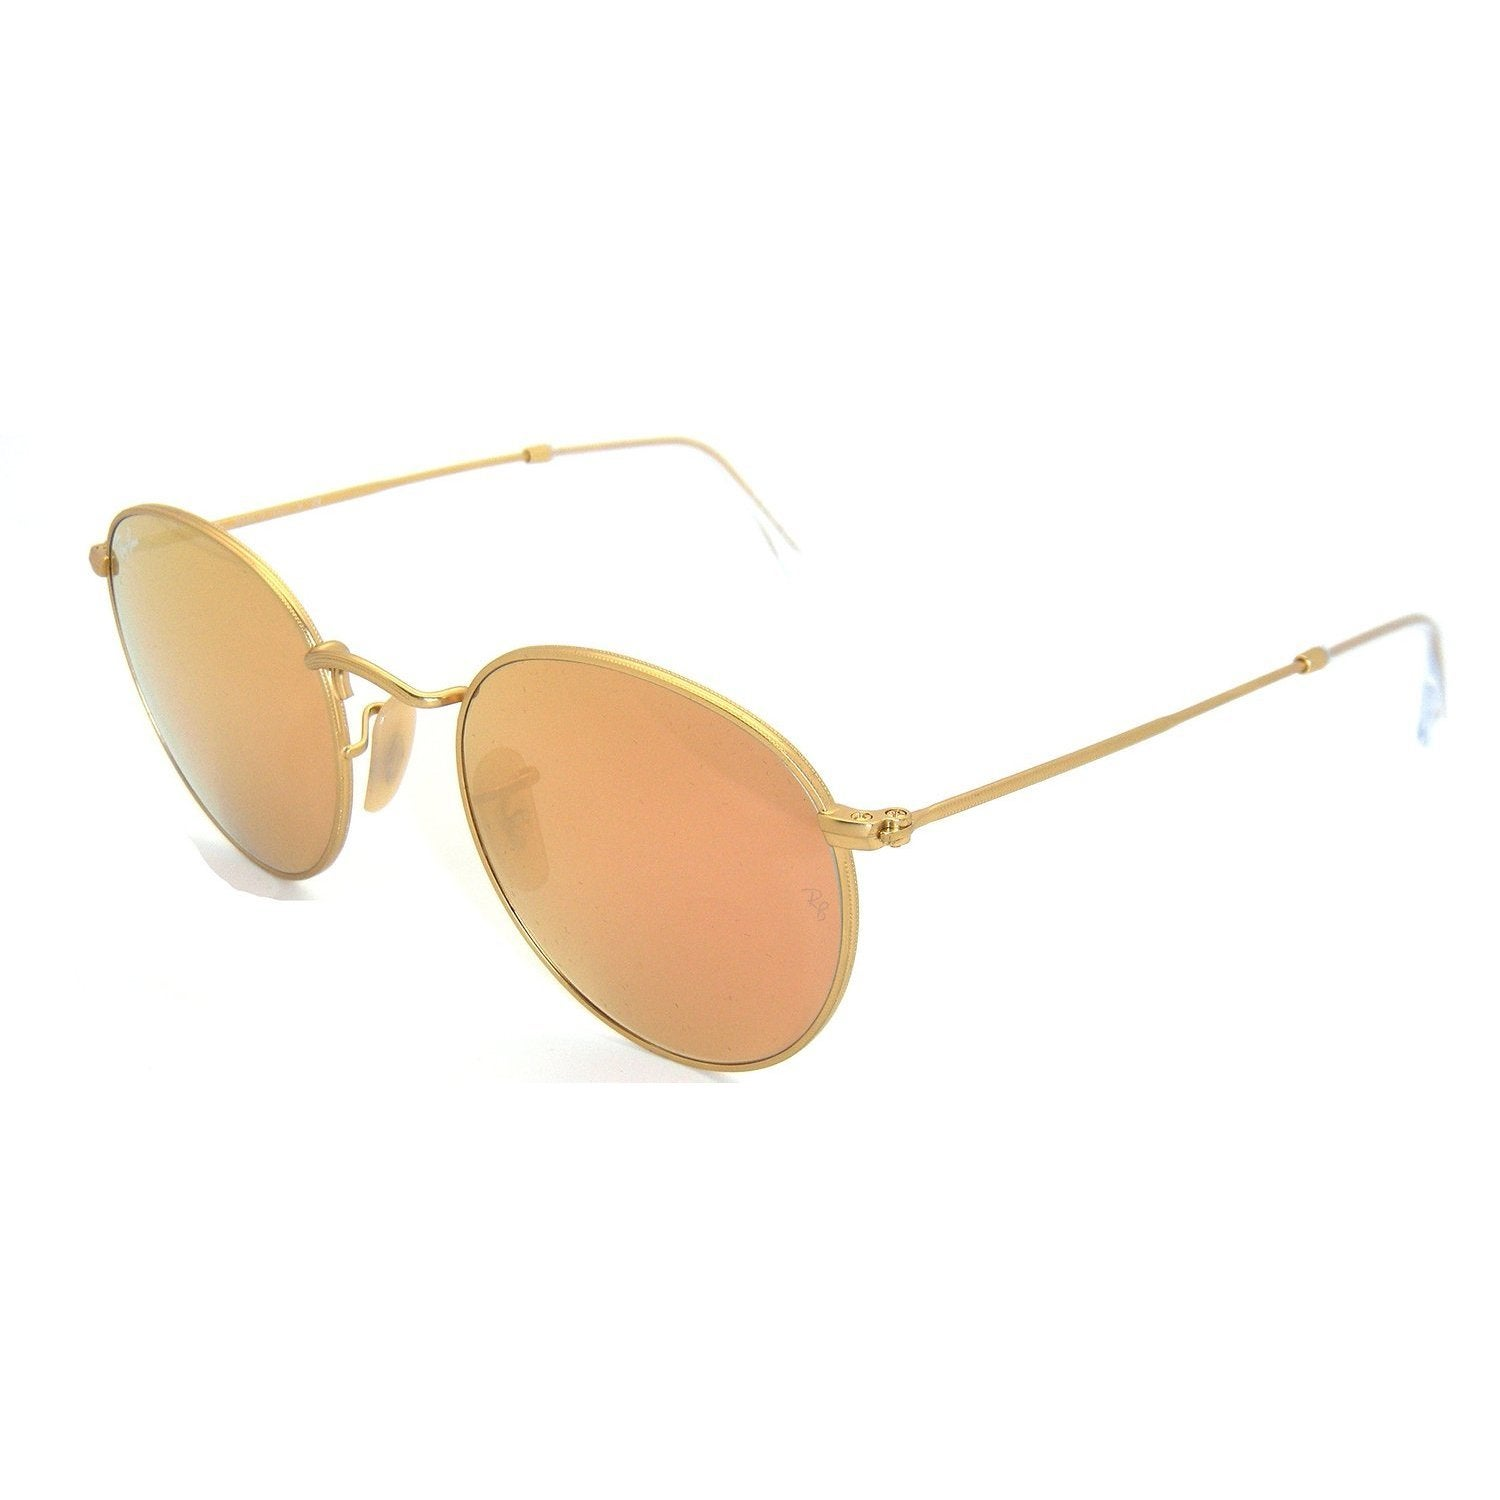 d9e5ab75e0 Shop Ray-Ban RB3447 50mm Round Sunglasses - Pink - Free Shipping Today -  Overstock - 10332833